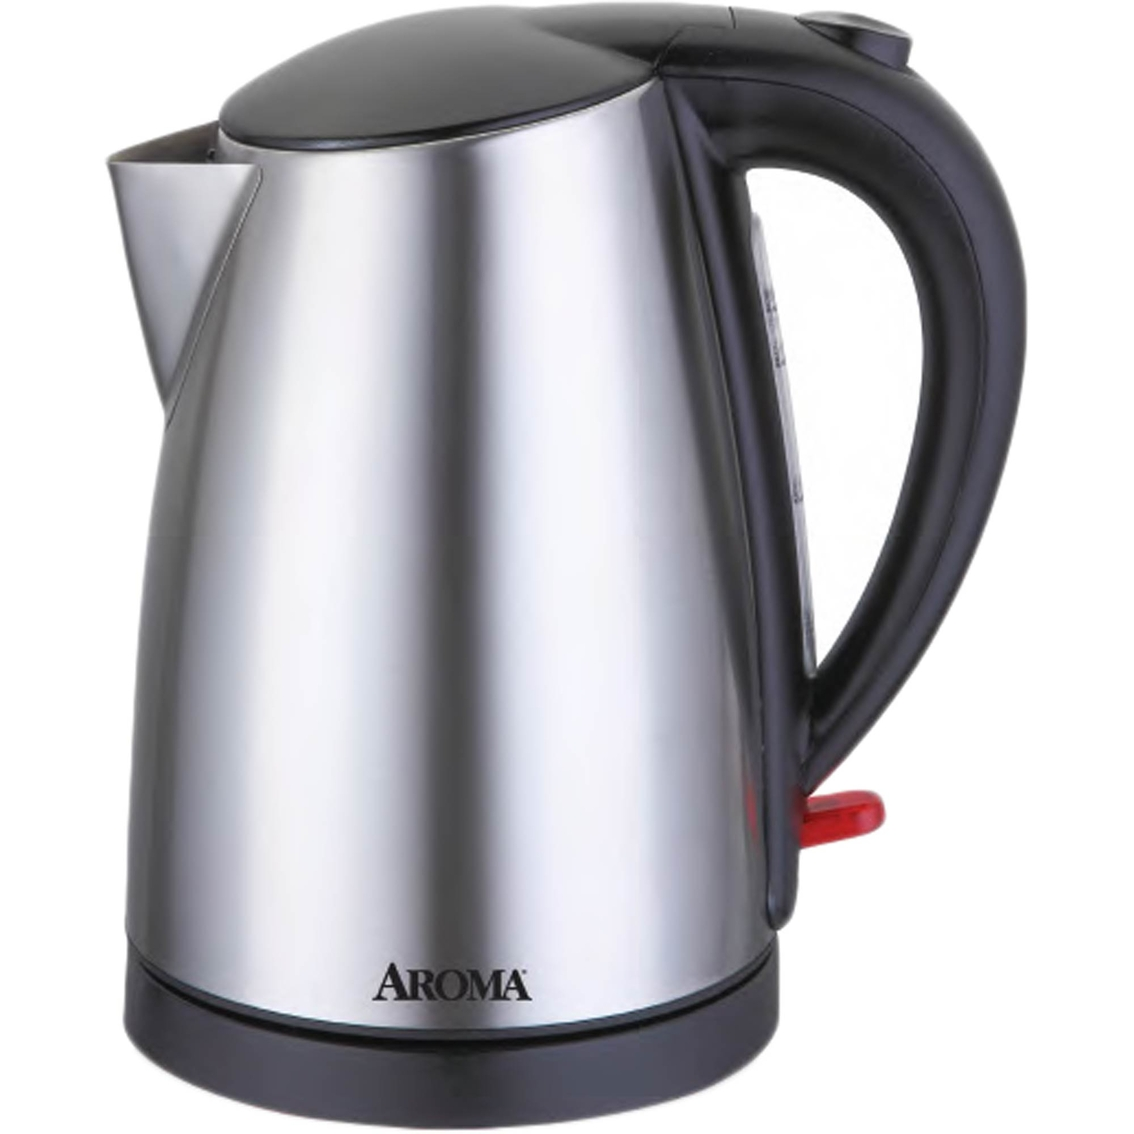 Stainless Electric Kettle ~ Aroma stainless steel electric water kettle tea makers